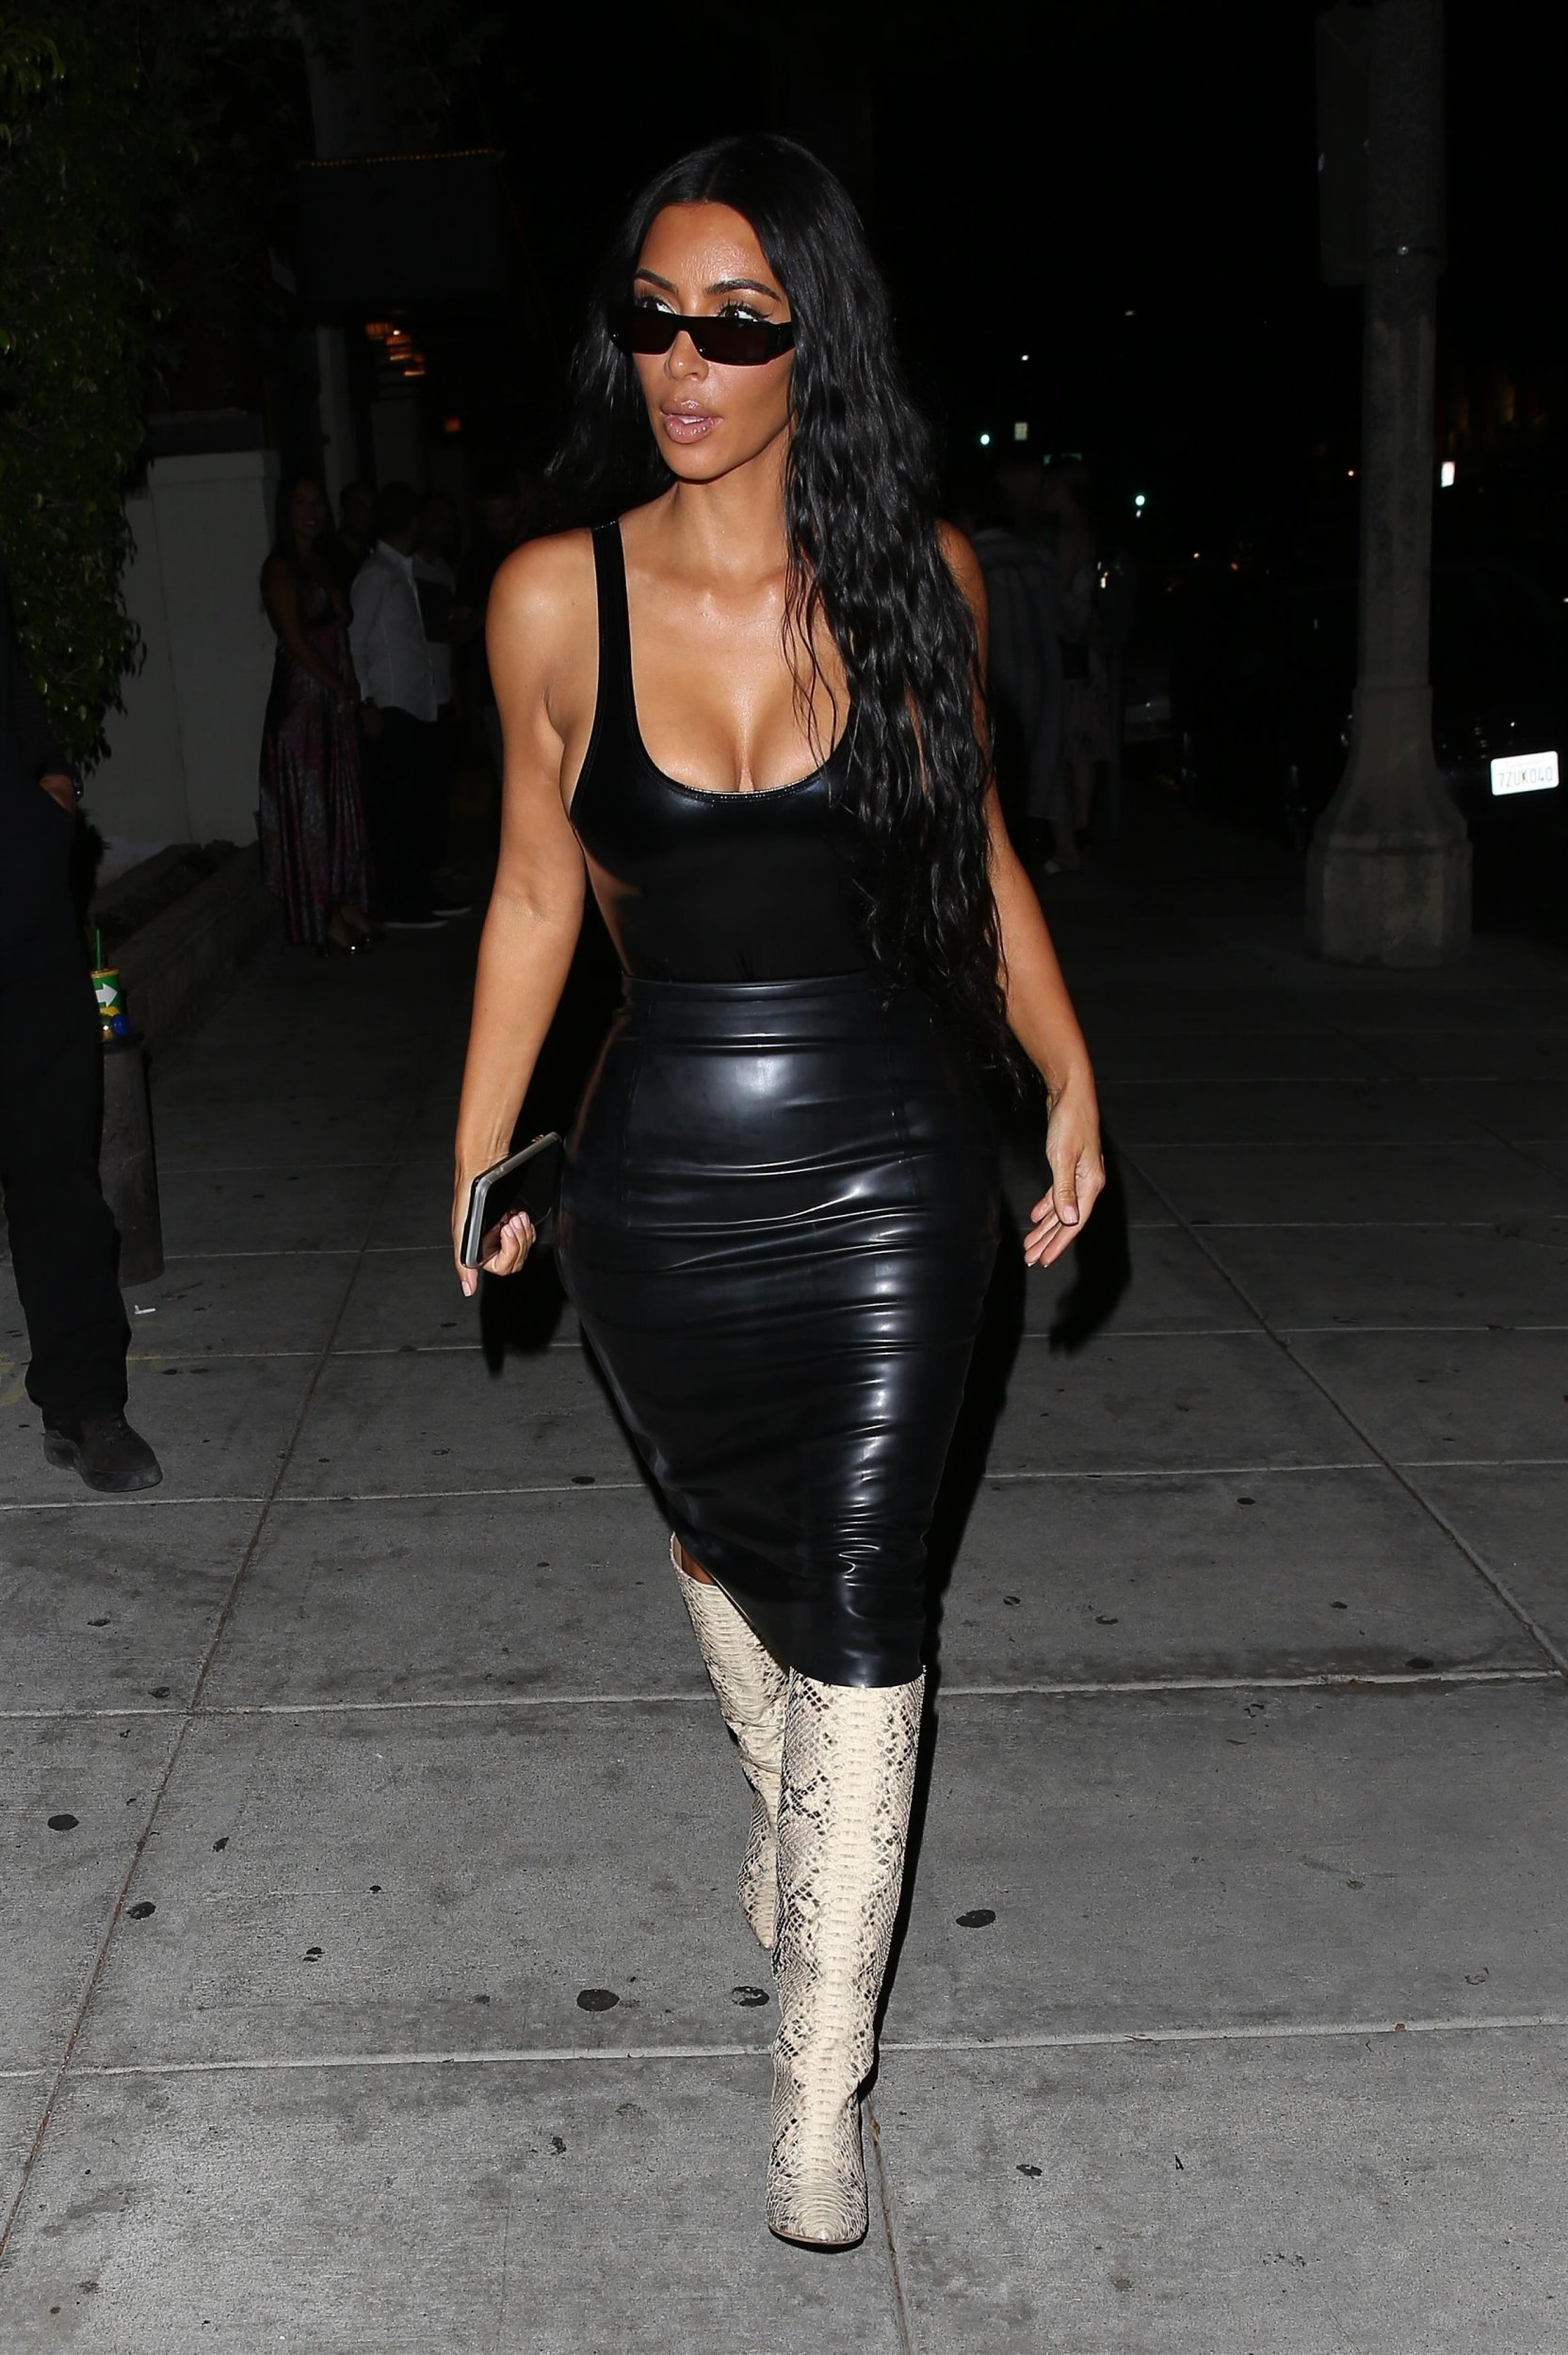 Beverly Hills, CA - *EXCLUSIVE* - Kim Kardashian and Kanye West have a date night at Matsuhisa Restaurant. Kim looks great in a slim fitting black out fit as the duo head to their ride after dinner. Pictured: Kim Kardashian BACKGRID USA 7 AUGUST 2018 USA: +1 310 798 9111 / usasales@backgrid.com UK: +44 208 344 2007 / uksales@backgrid.com *UK Clients - Pictures Containing Children Please Pixelate Face Prior To Publication*